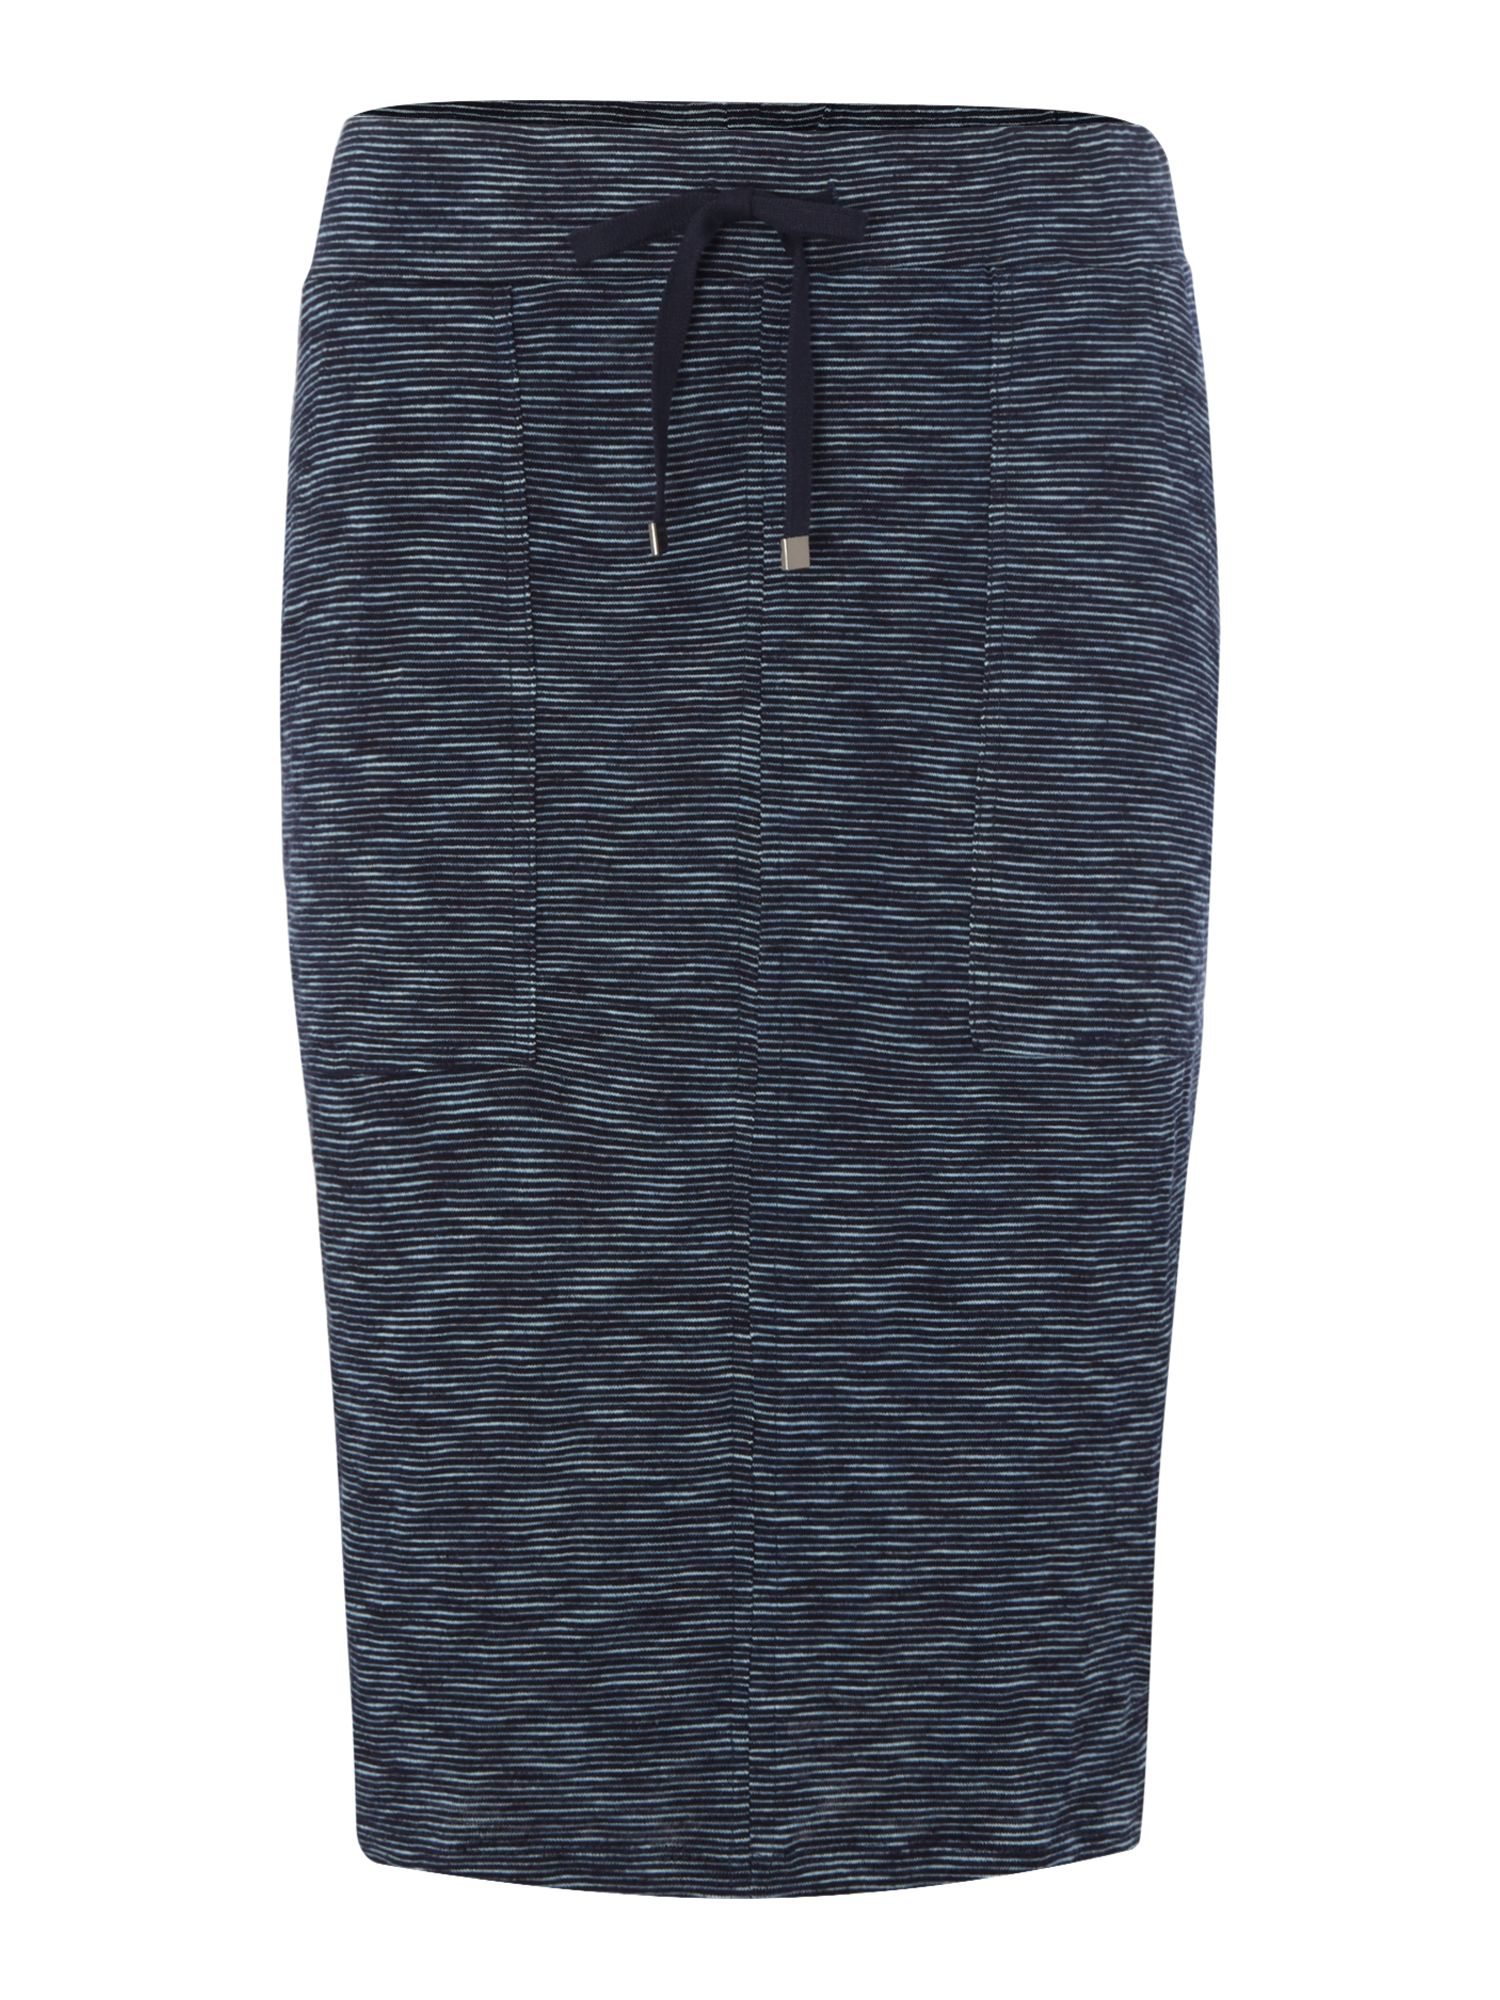 Joules Skirt with tie waist, Blue